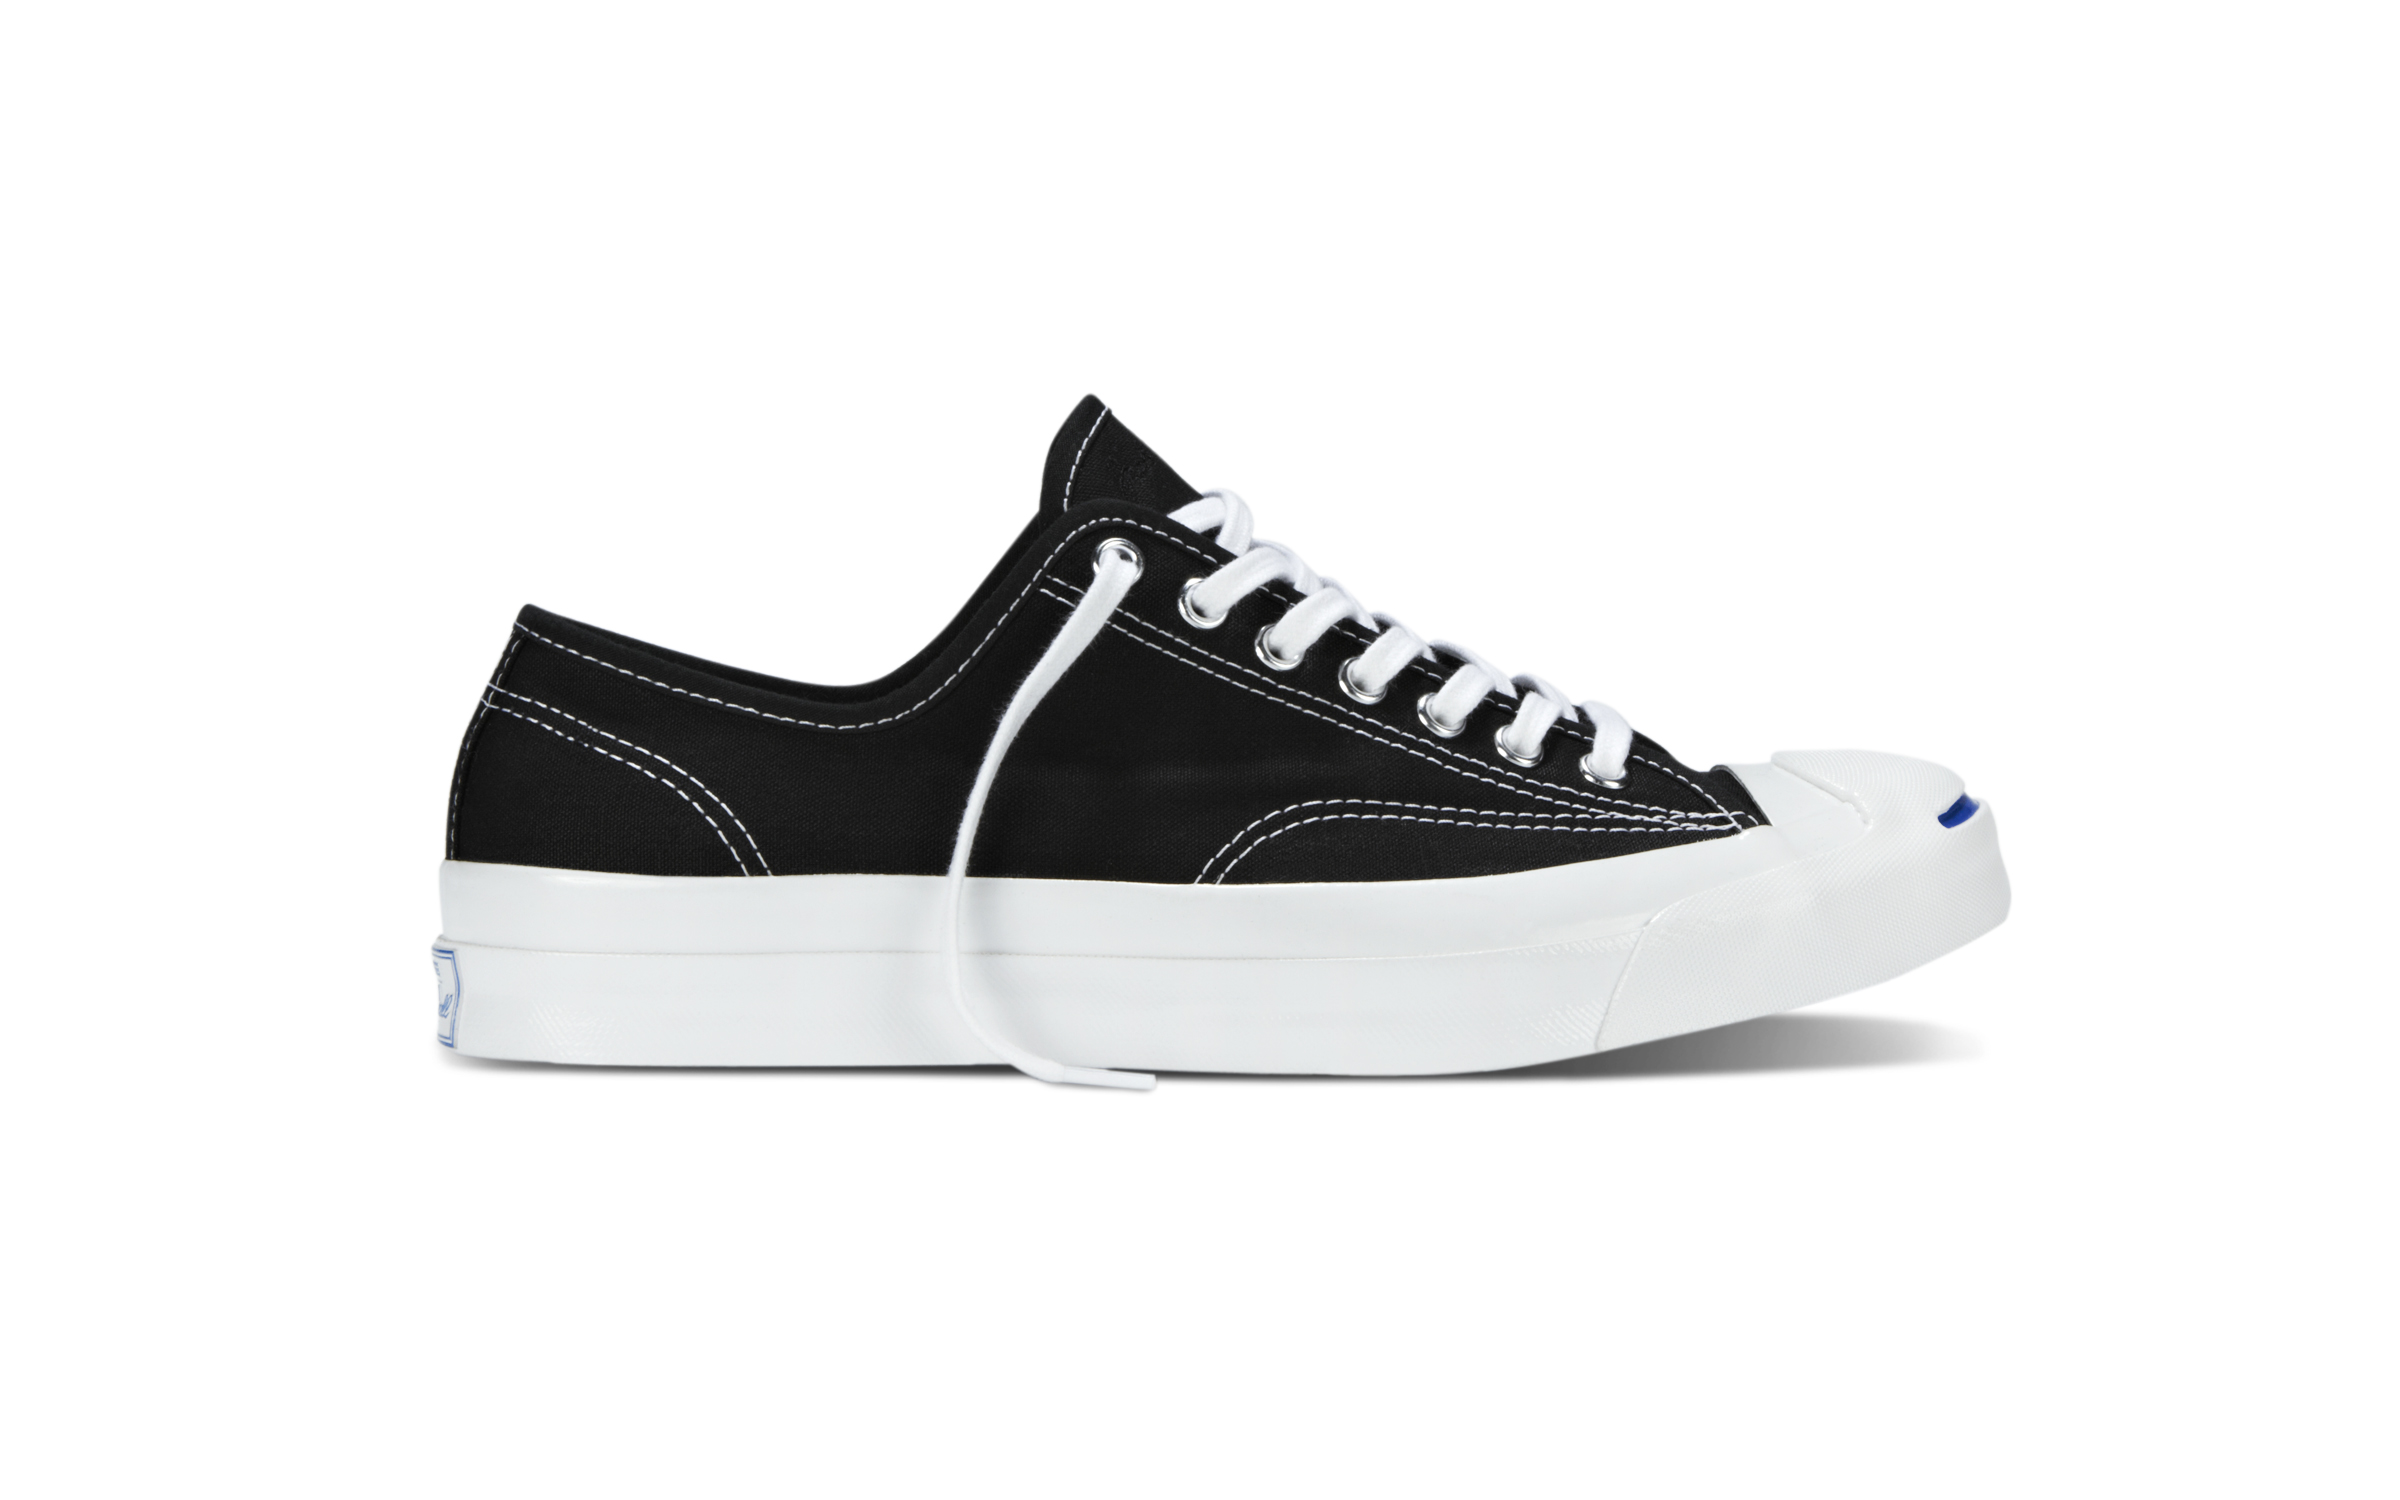 CONVERSE DEBUTS THE JACK PURCELL SIGNATURE SNEAKER. Download Image: LO · HI